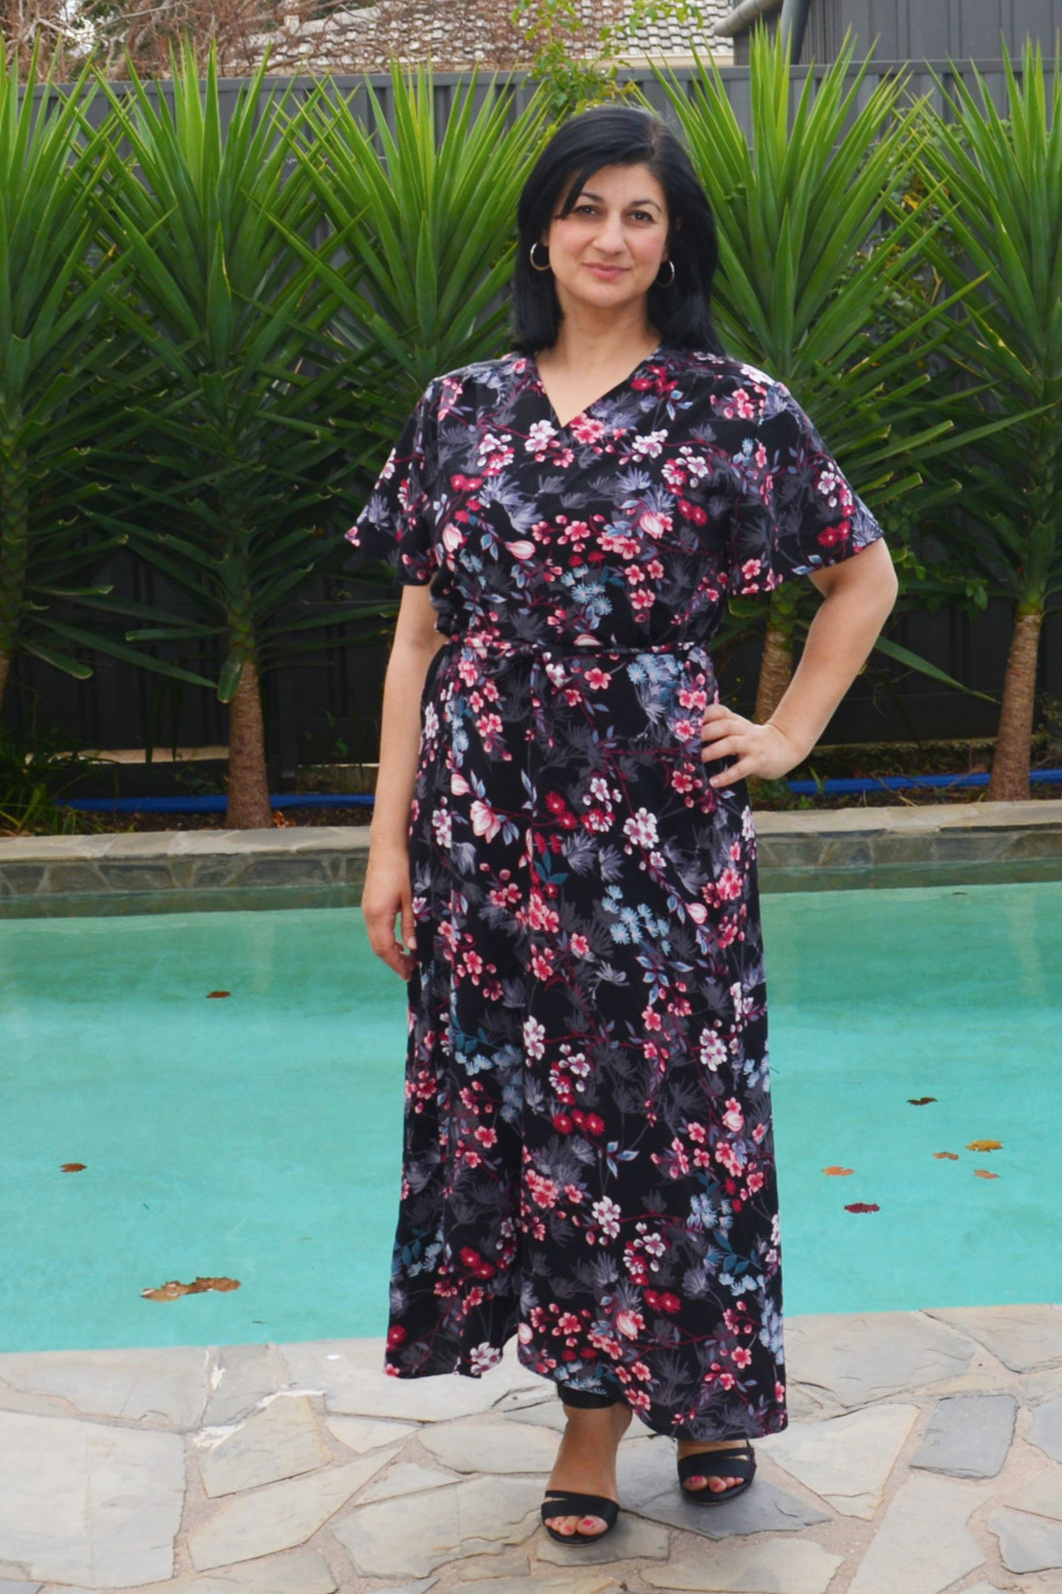 Miss Laura Wrap Dress from 1 Puddle Lane